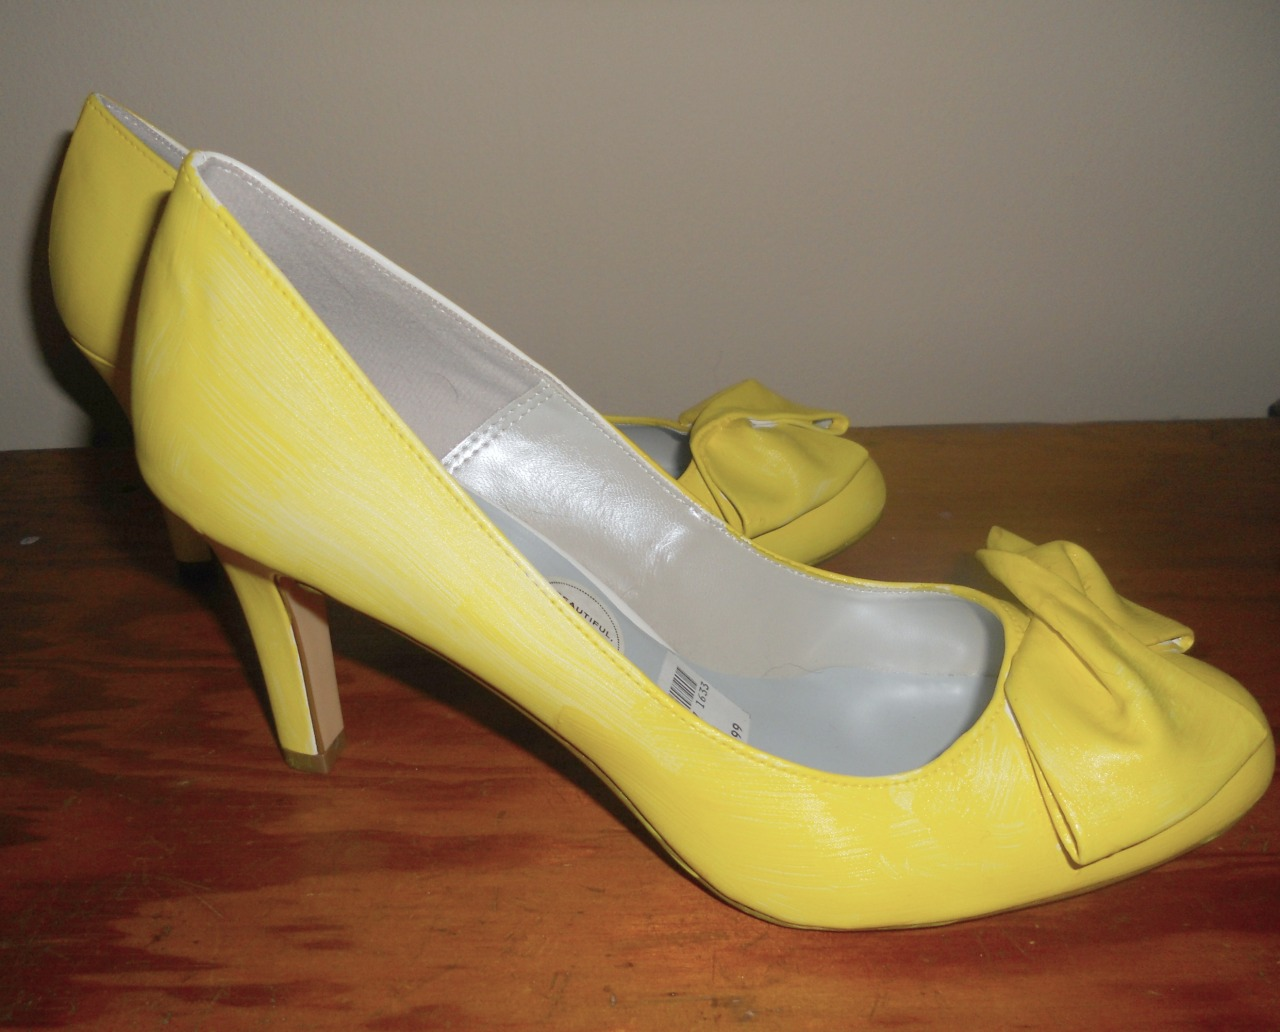 yellow shoes, final product